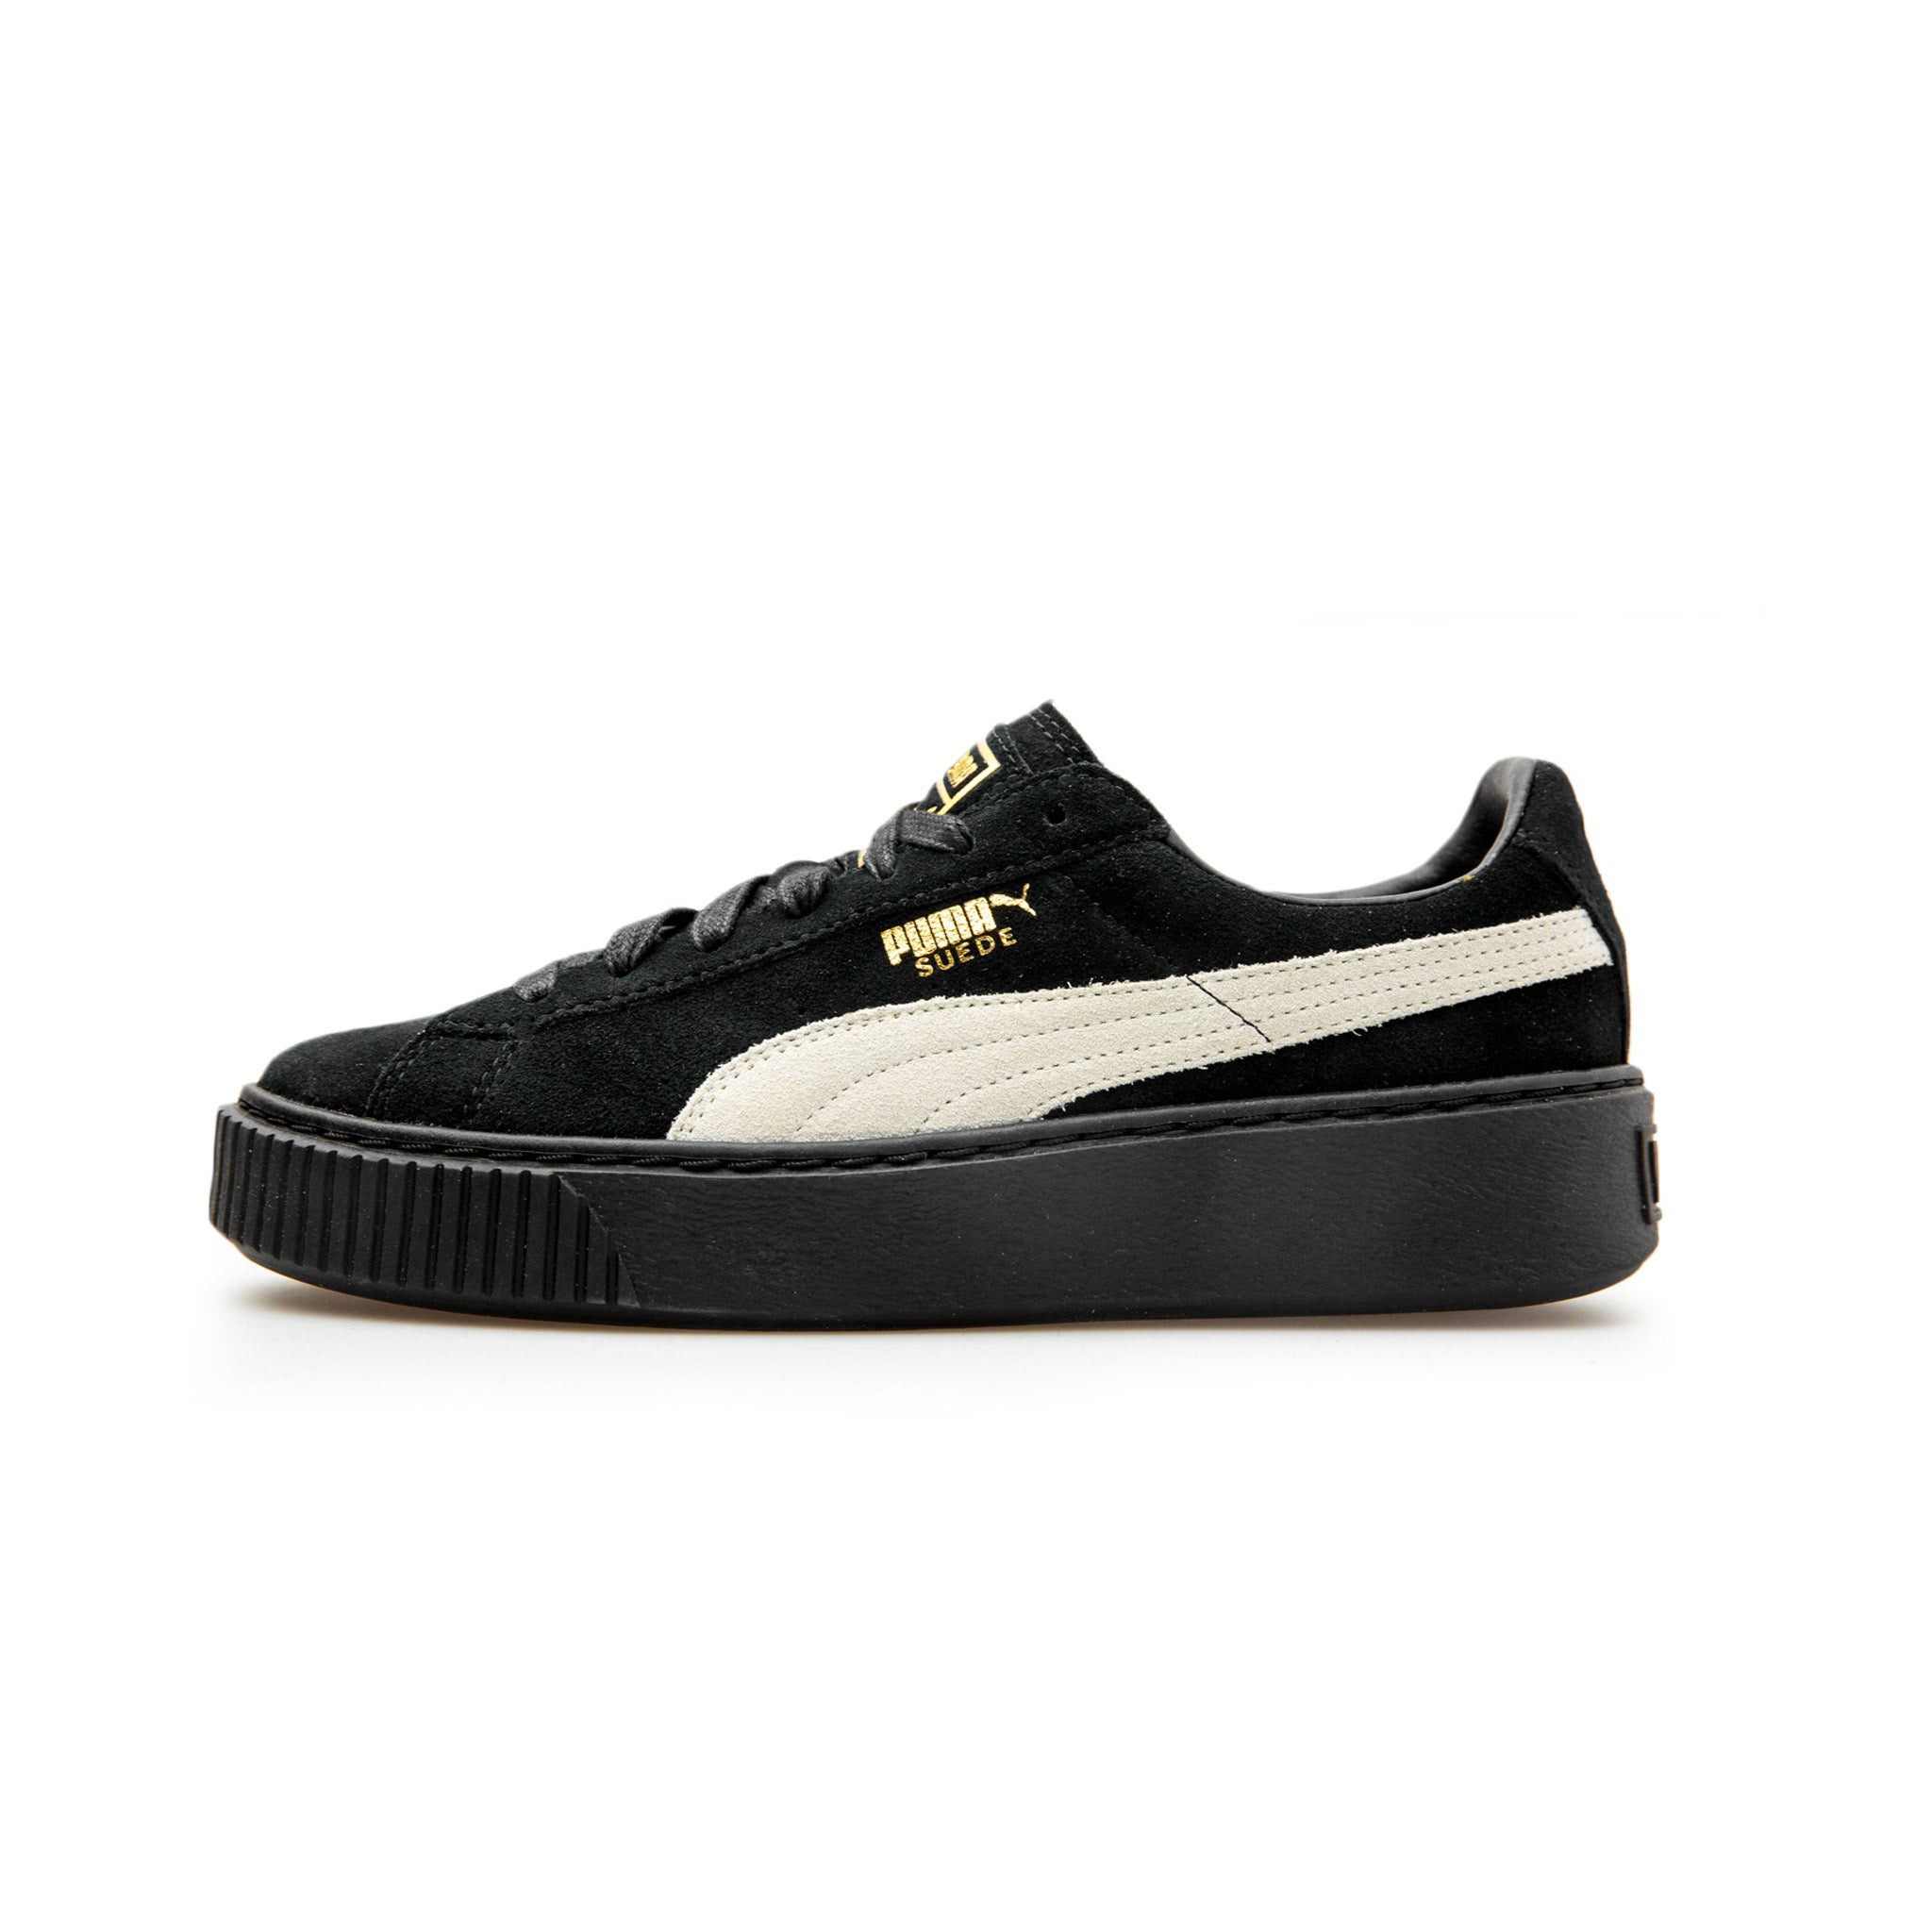 official photos ec320 e07c6 puma suede black white gold